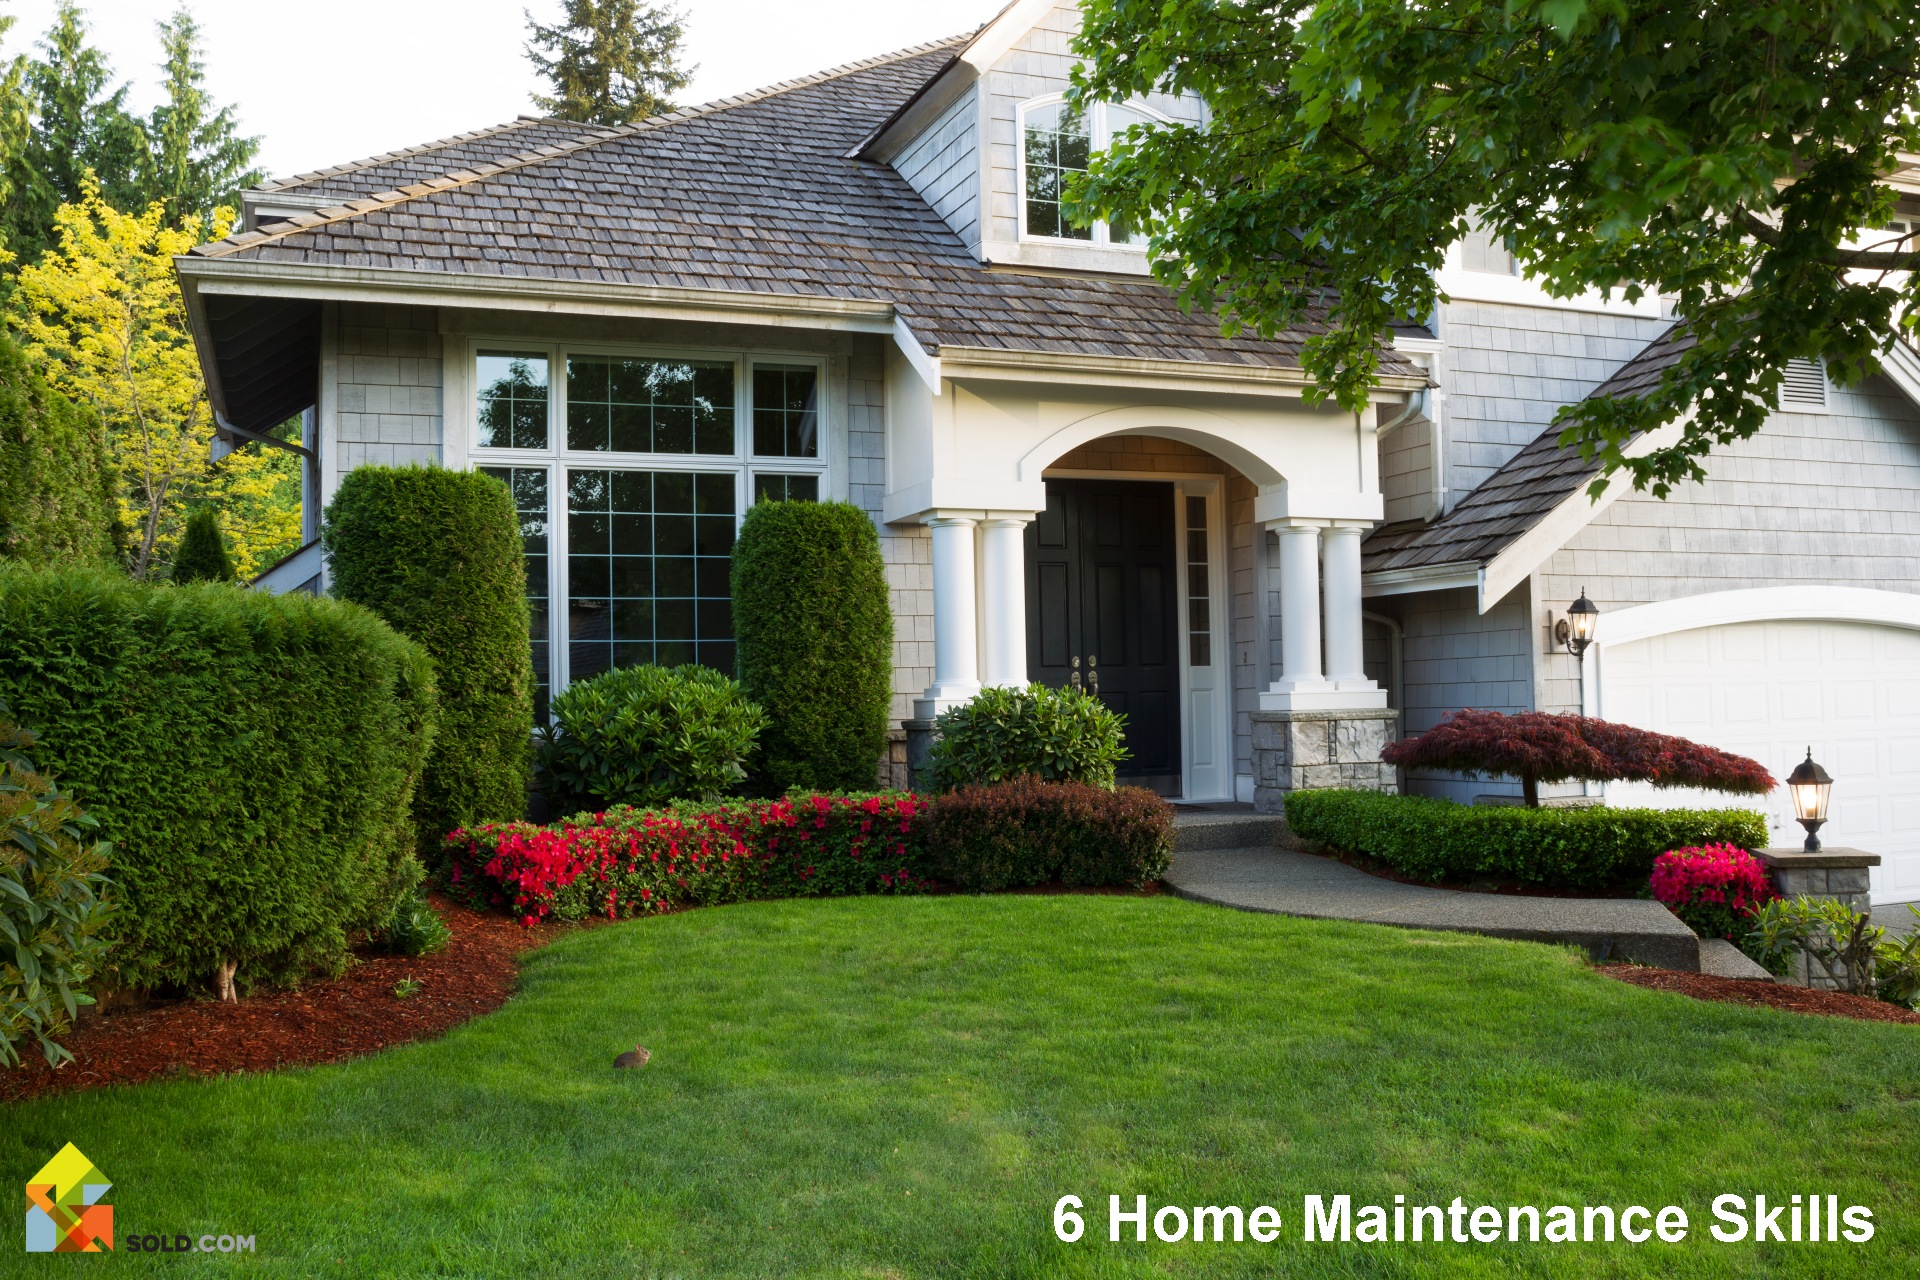 6 Home Maintenance Skills Every Homeowner Should Master